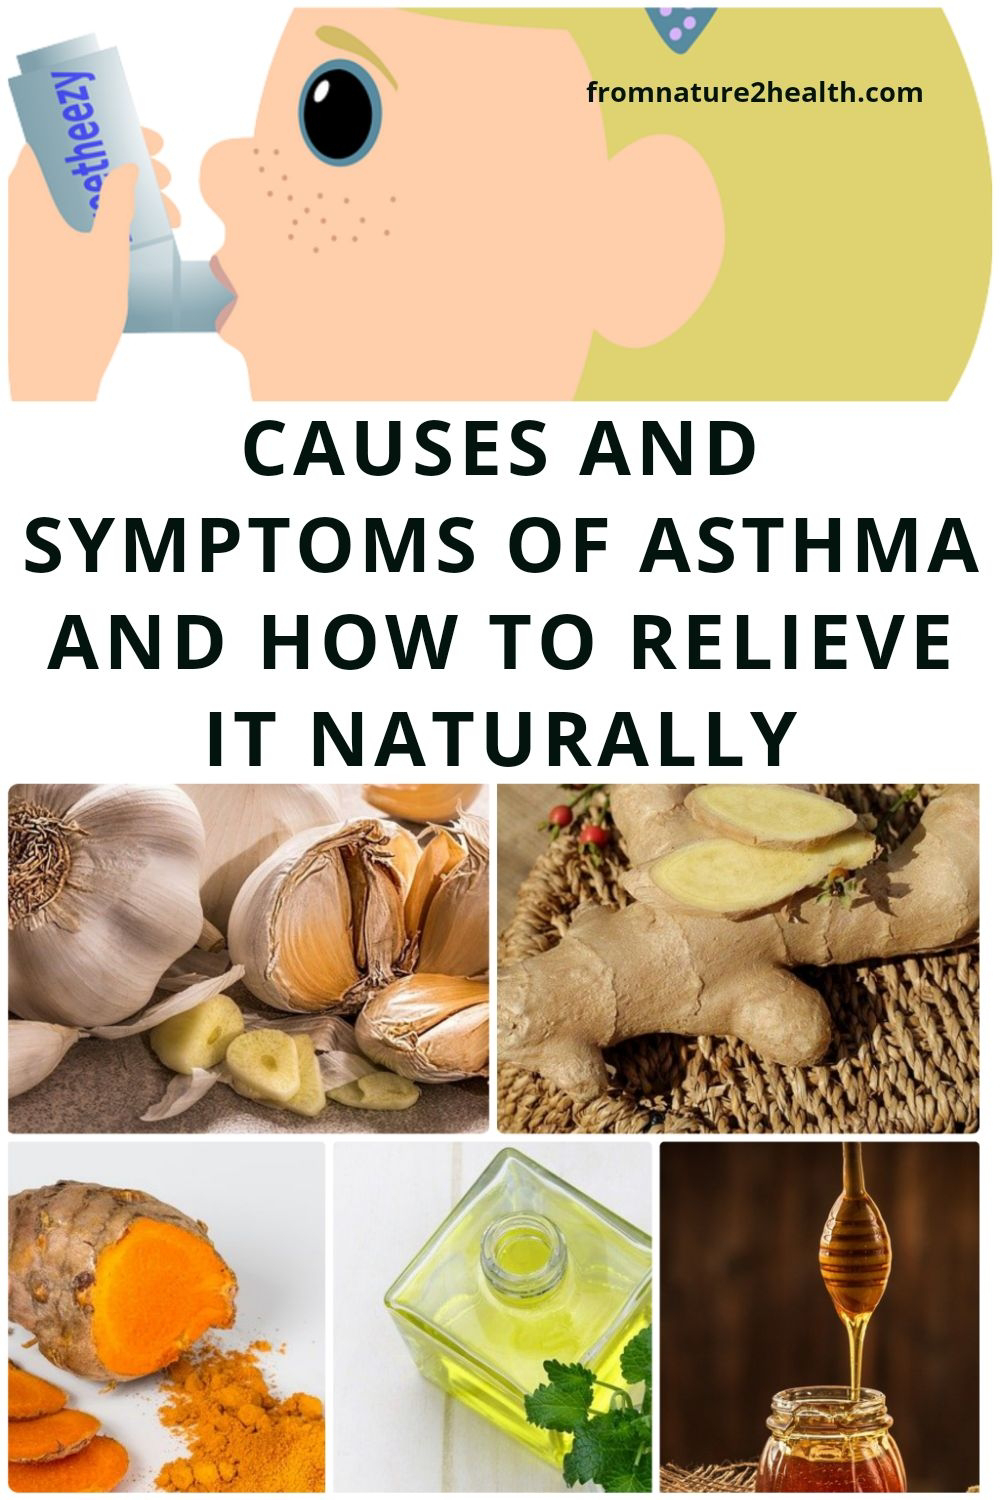 Causes and Symptoms of Asthma and How to Relieve It Naturally